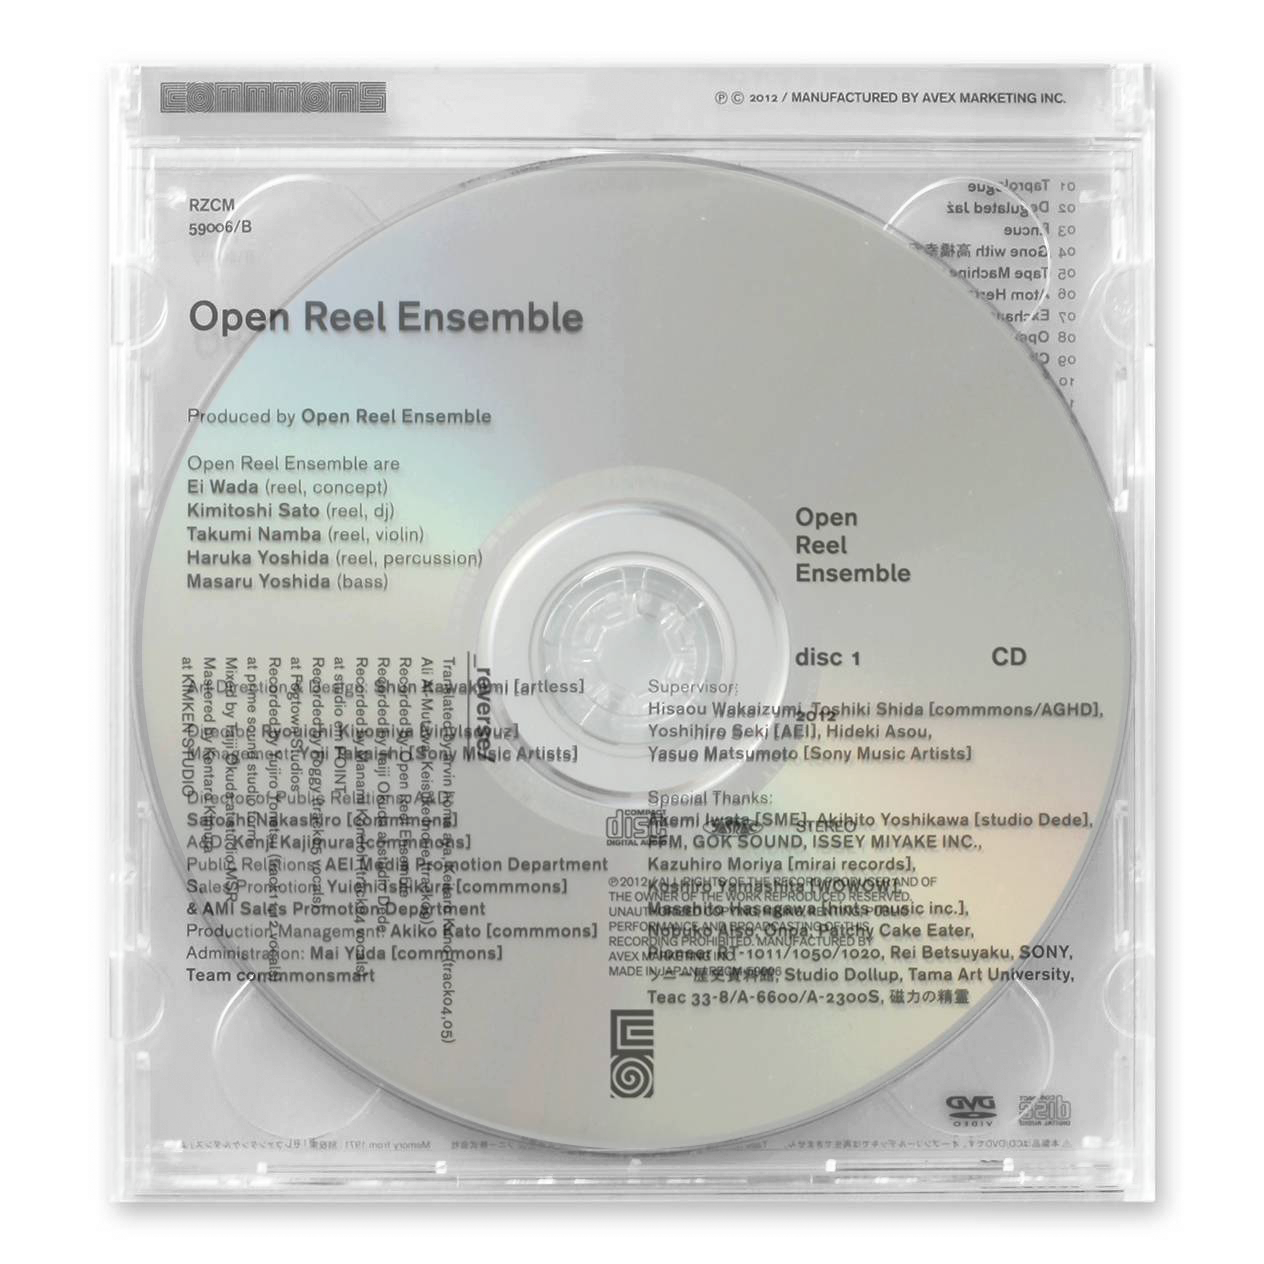 Open Reel Ensemble / Open Reel...